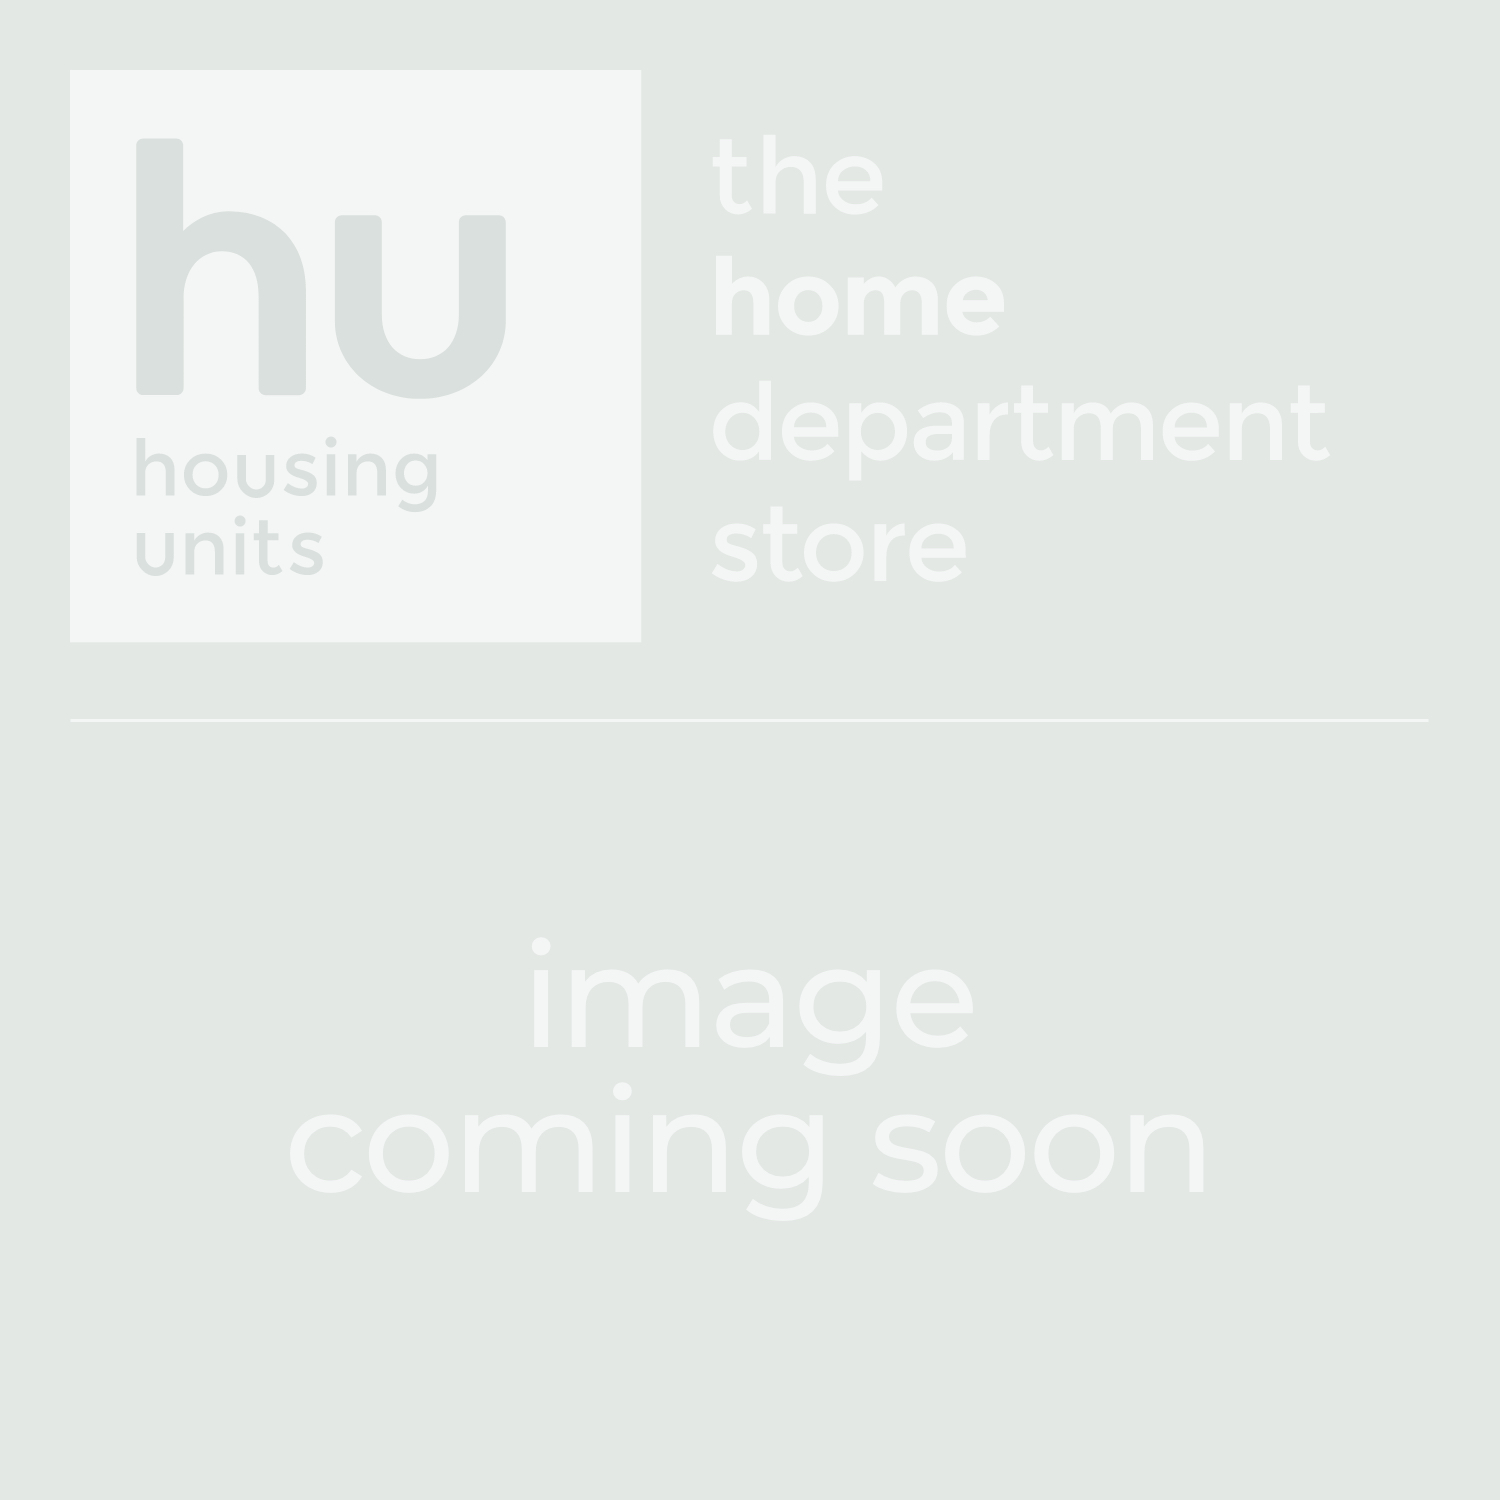 The Safety 1st harness and rein set secures to child keeping them safe when on walks, in highchairs, prams, carrycots and pushchairs